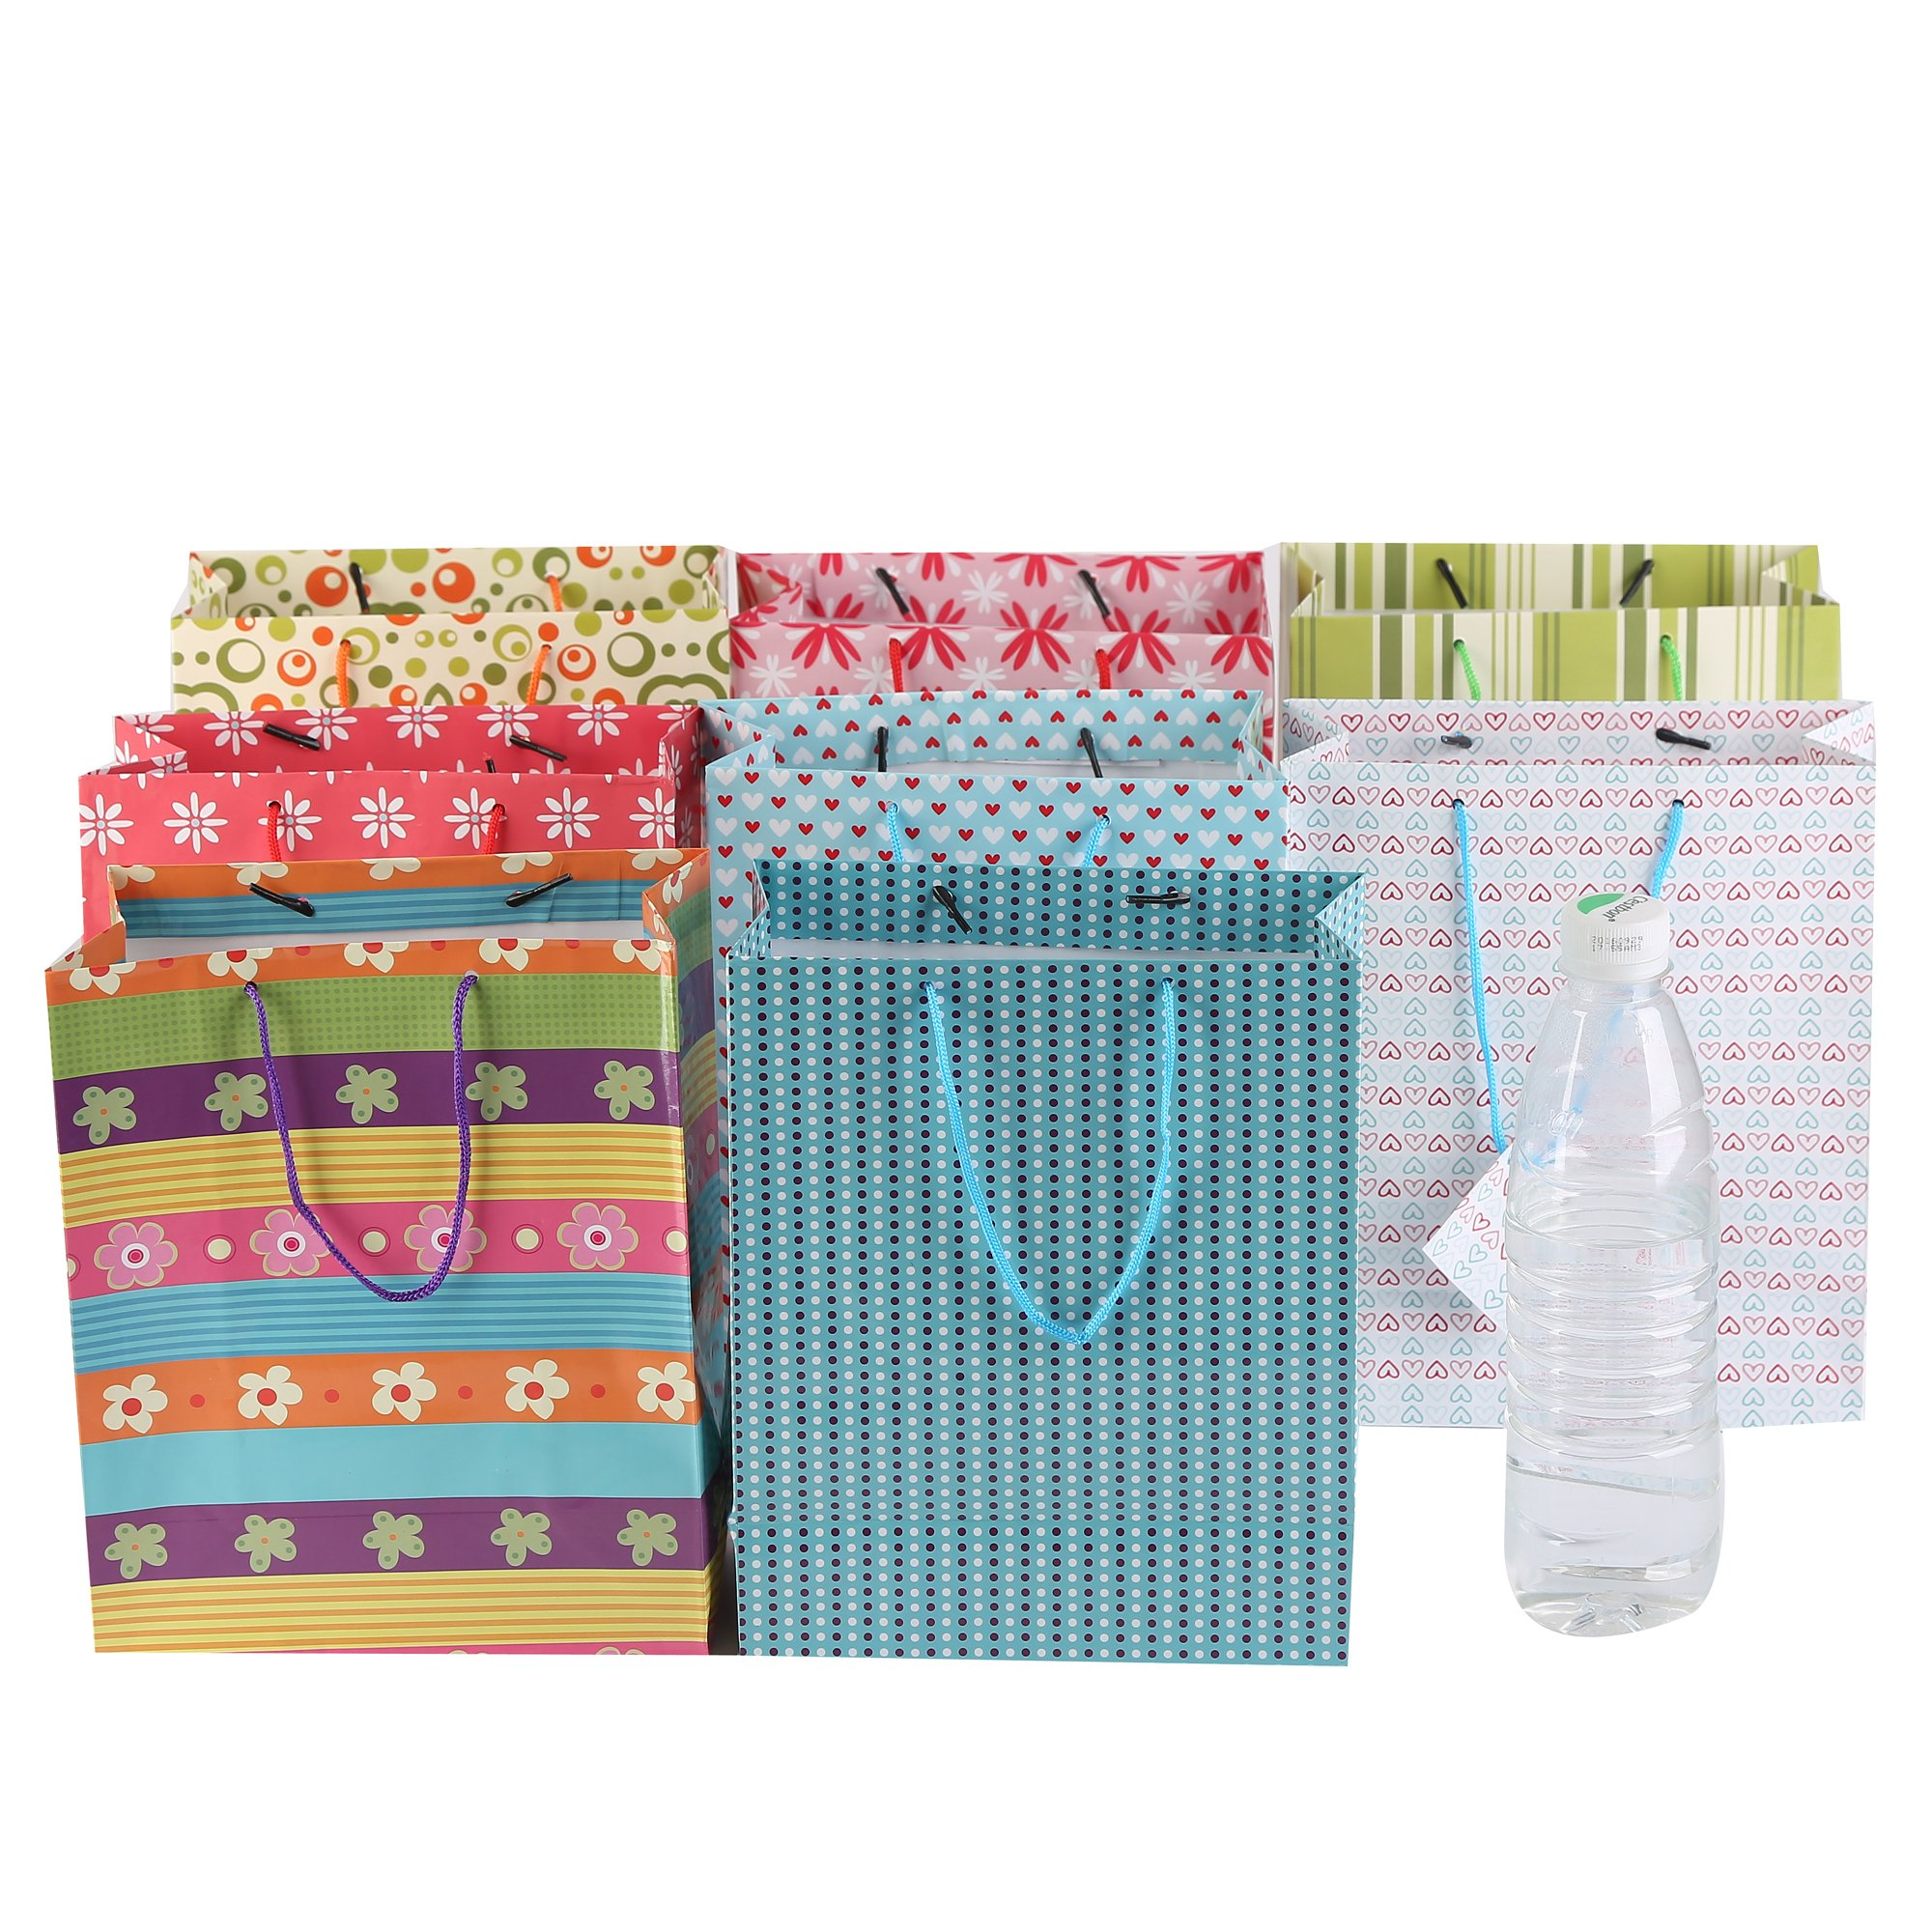 Fun Central (BC742) 60ct 9 Inch Colorful Gift Bag, Gift Bags, Gift Bag, Amazon Gift Bags, Birthday Gift Bags, Gift Bags for Kids, Wedding Gift Bags, Birthday Gift Bag, Baby Gift Bags - Assorted